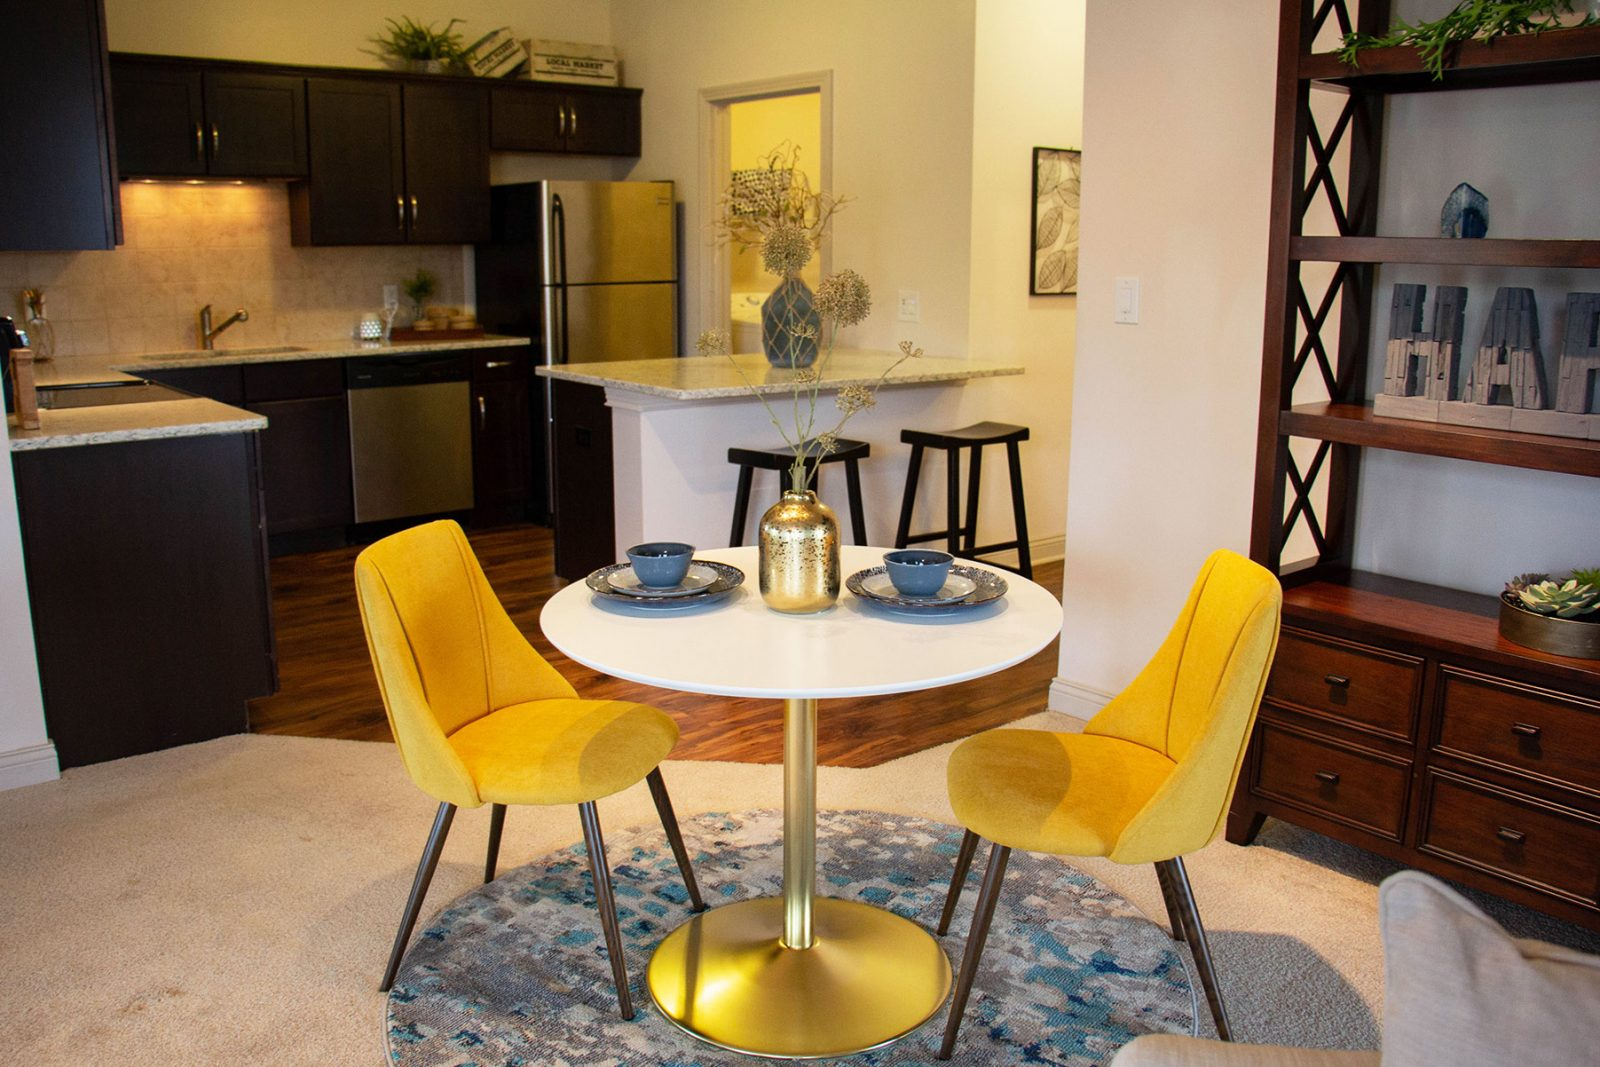 Spacious apartments with modern lighting fixtures and engineered wide hardwood flooring, private balconies and patios.